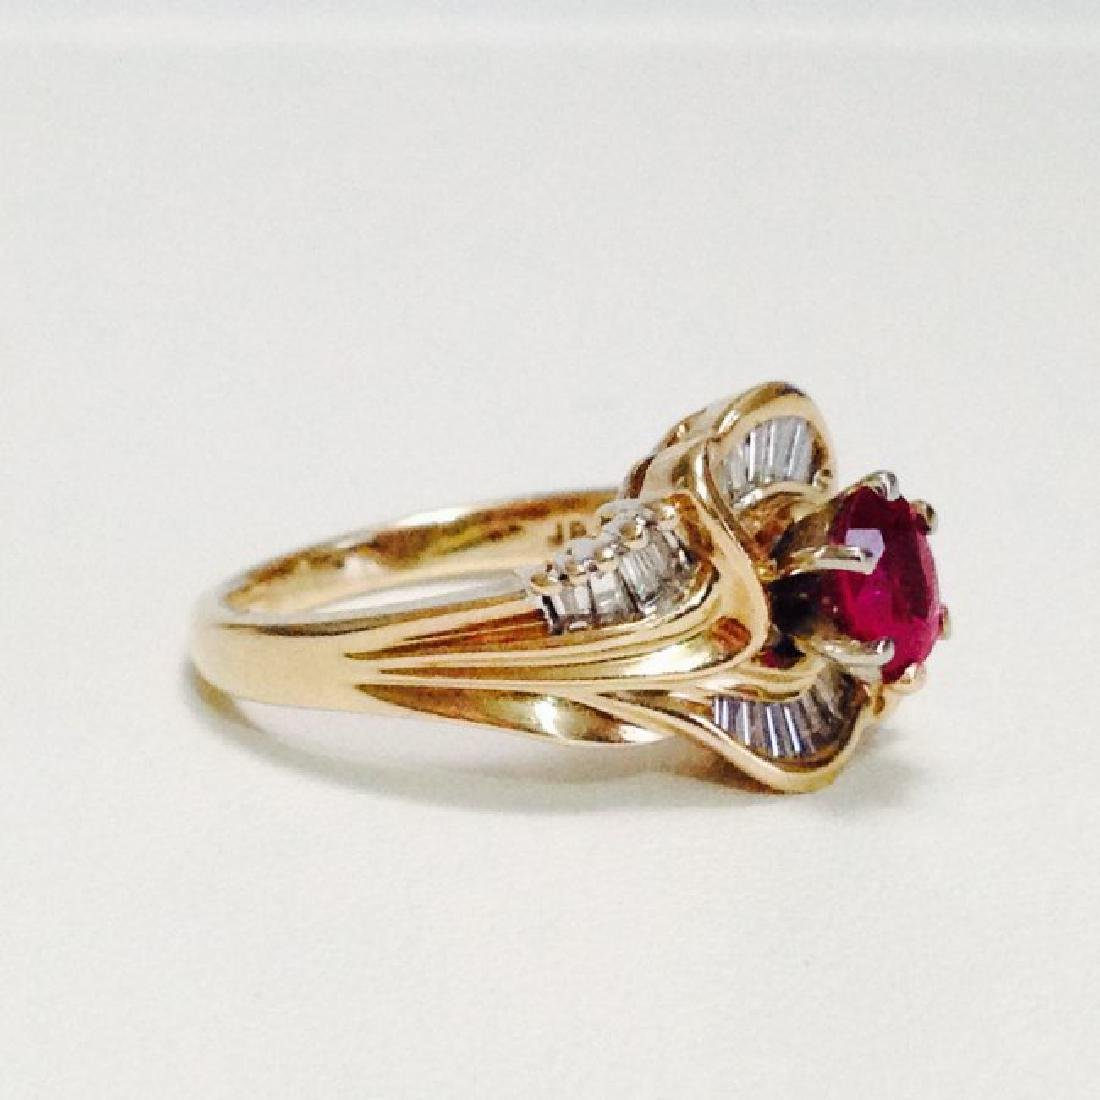 14k Gold Ruby And Diamond Cocktail Ring - 3